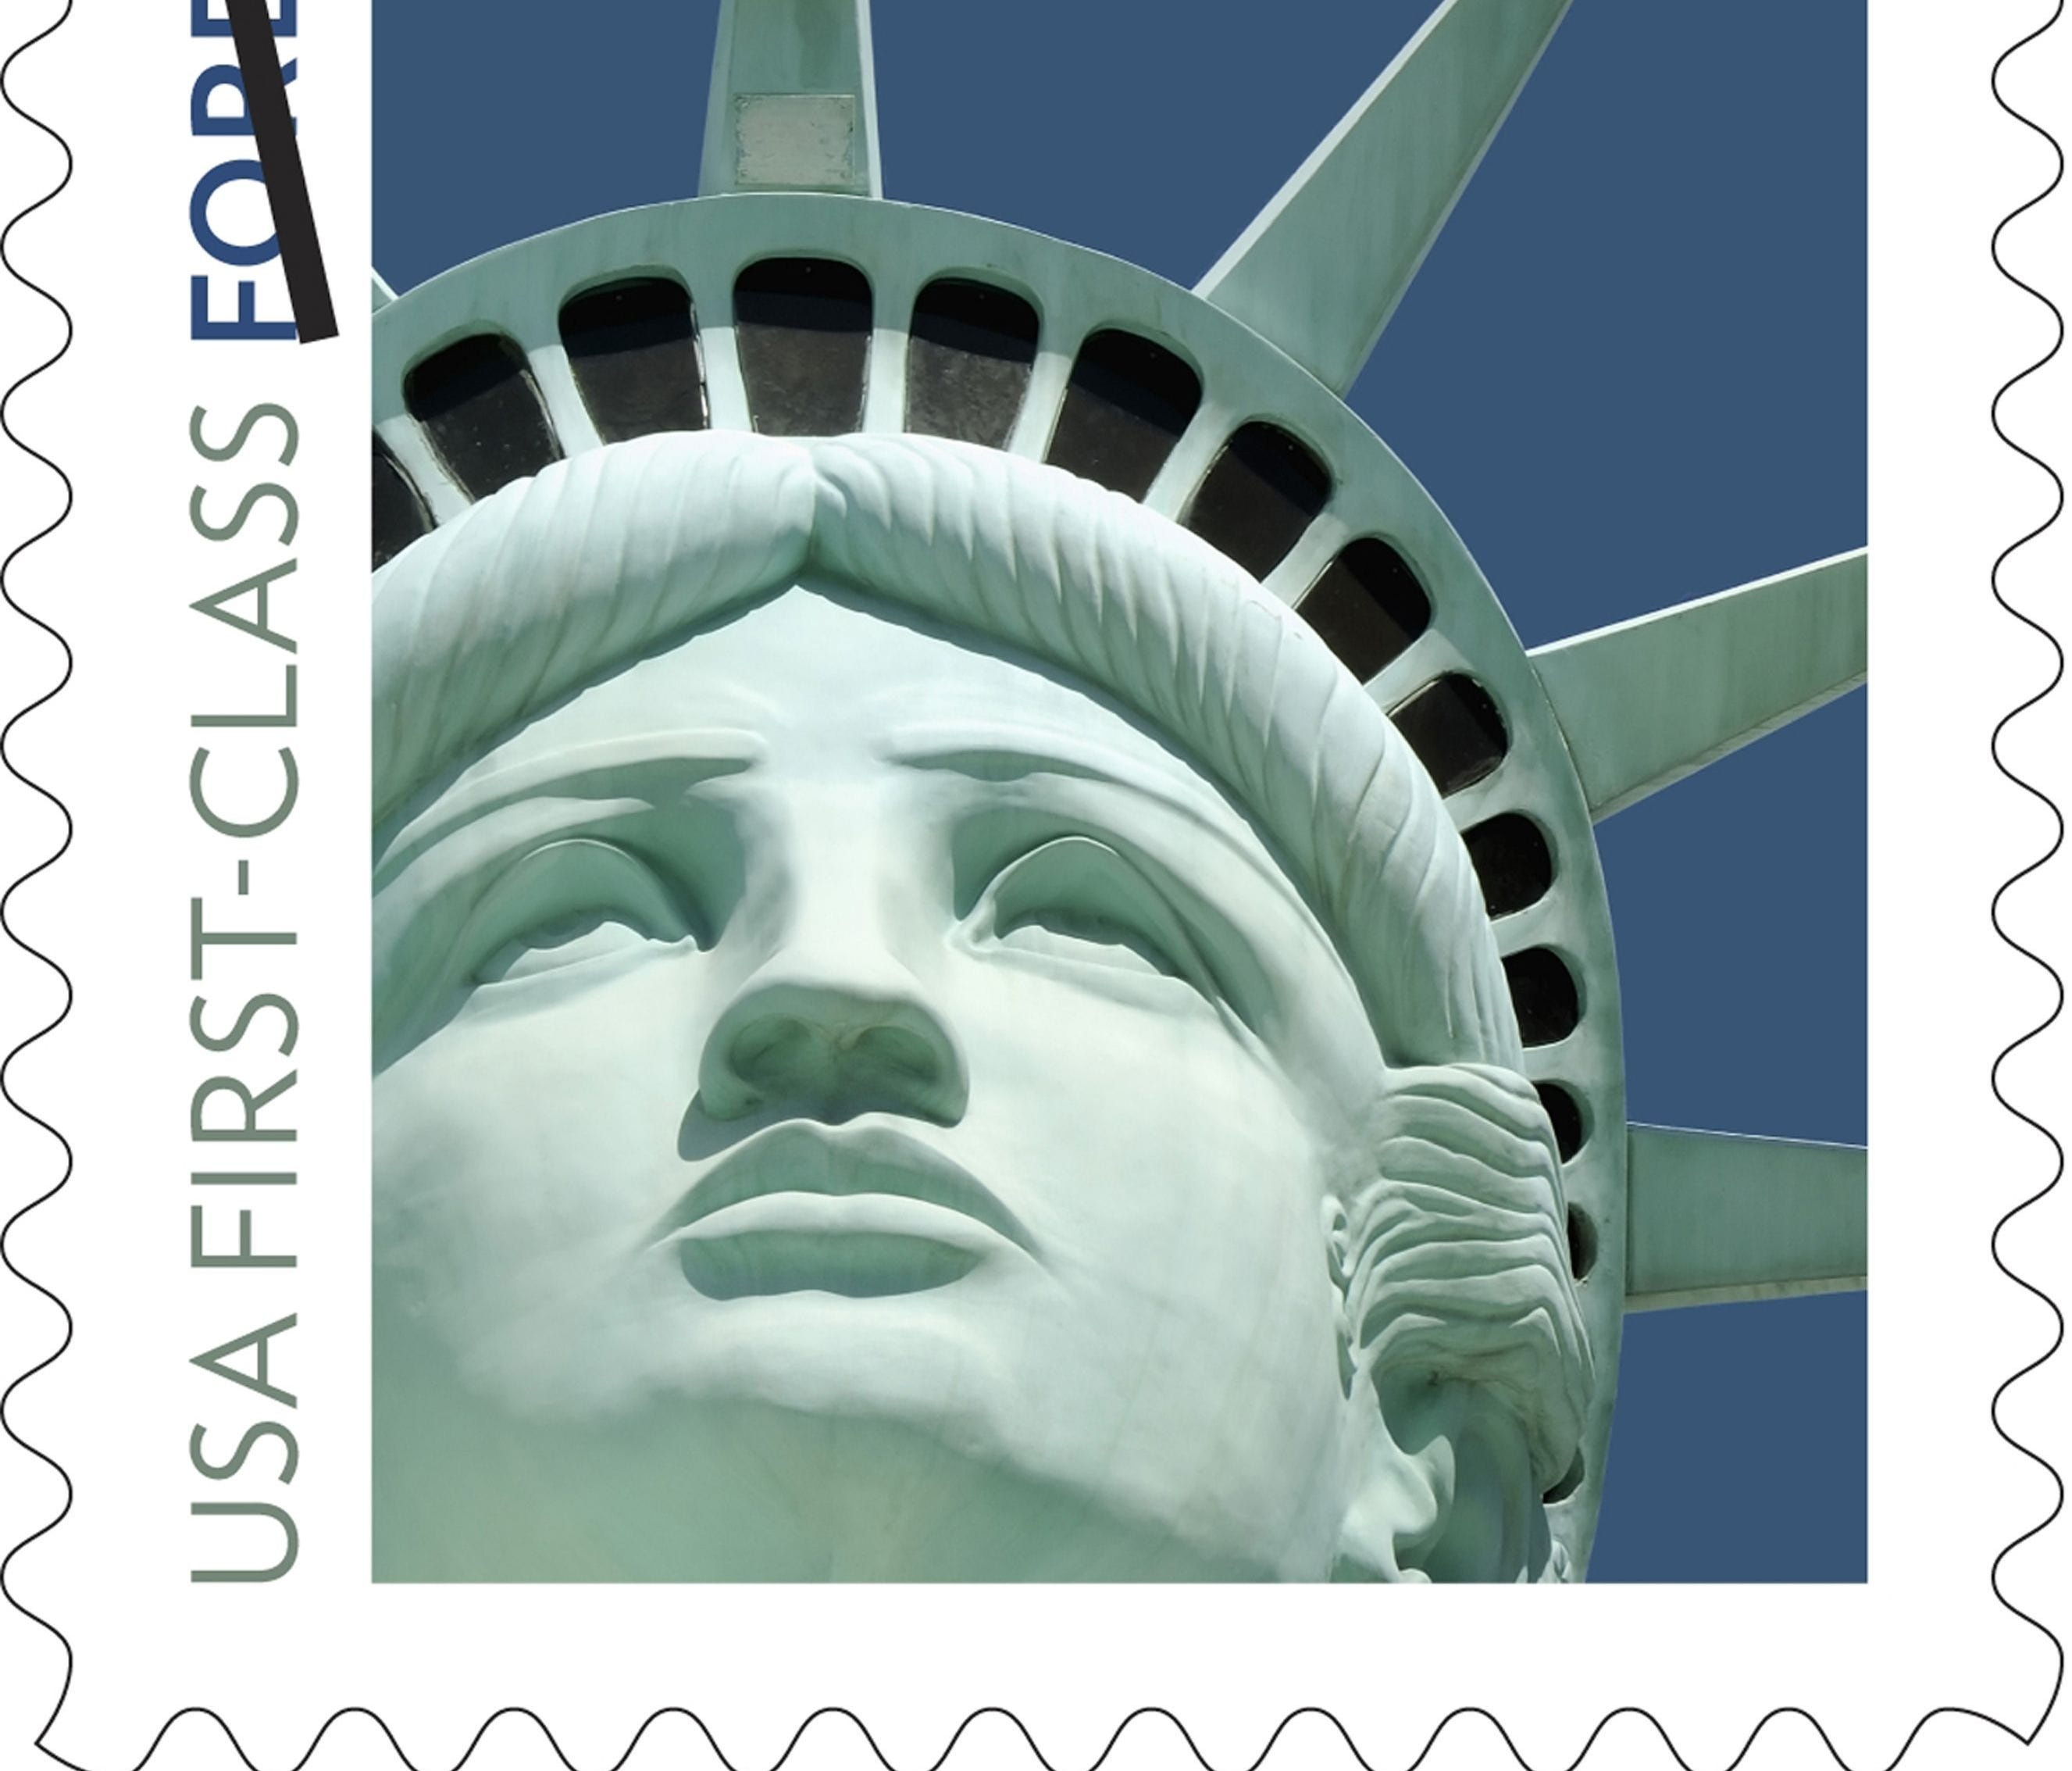 This undated file handout image provided by the U.S. Postal Service shows the Lady Liberty first class postage stamp first issued in 2011.